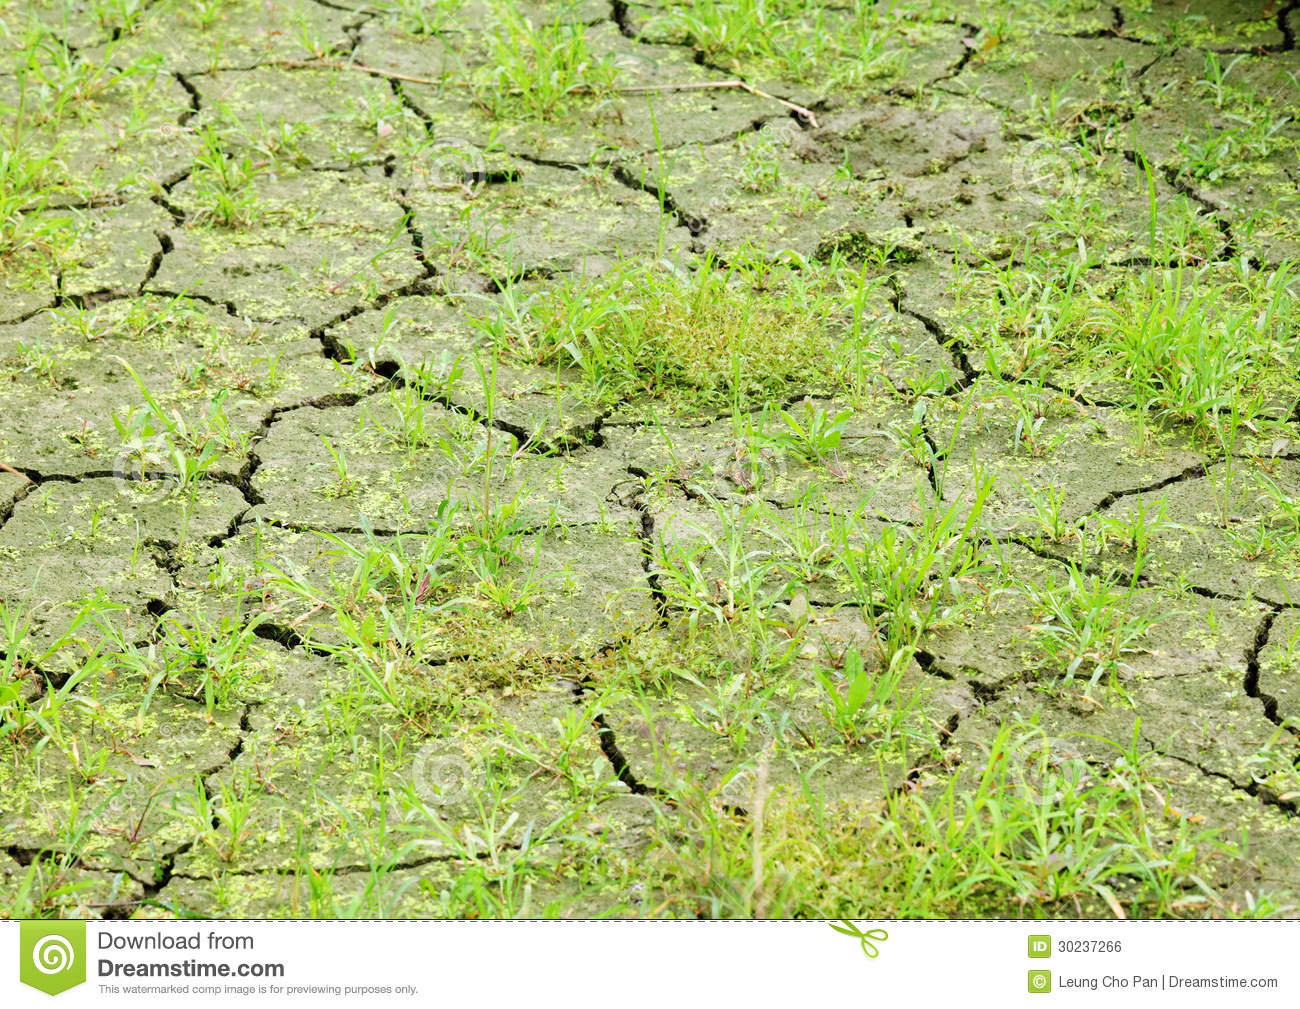 Green grass on cracked earth